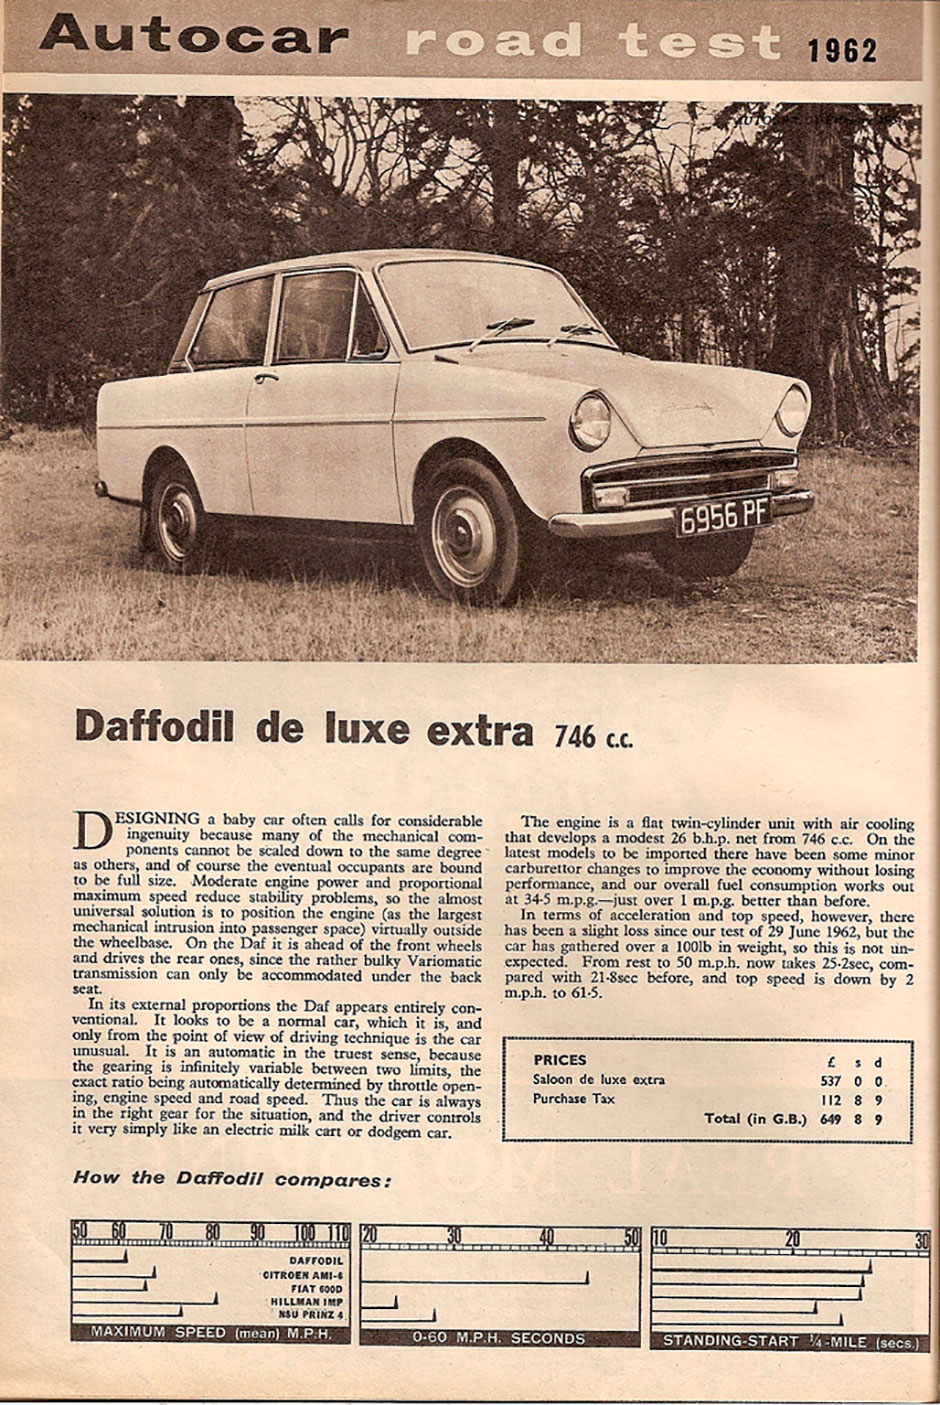 DAF Daffodil De Luxe Extra